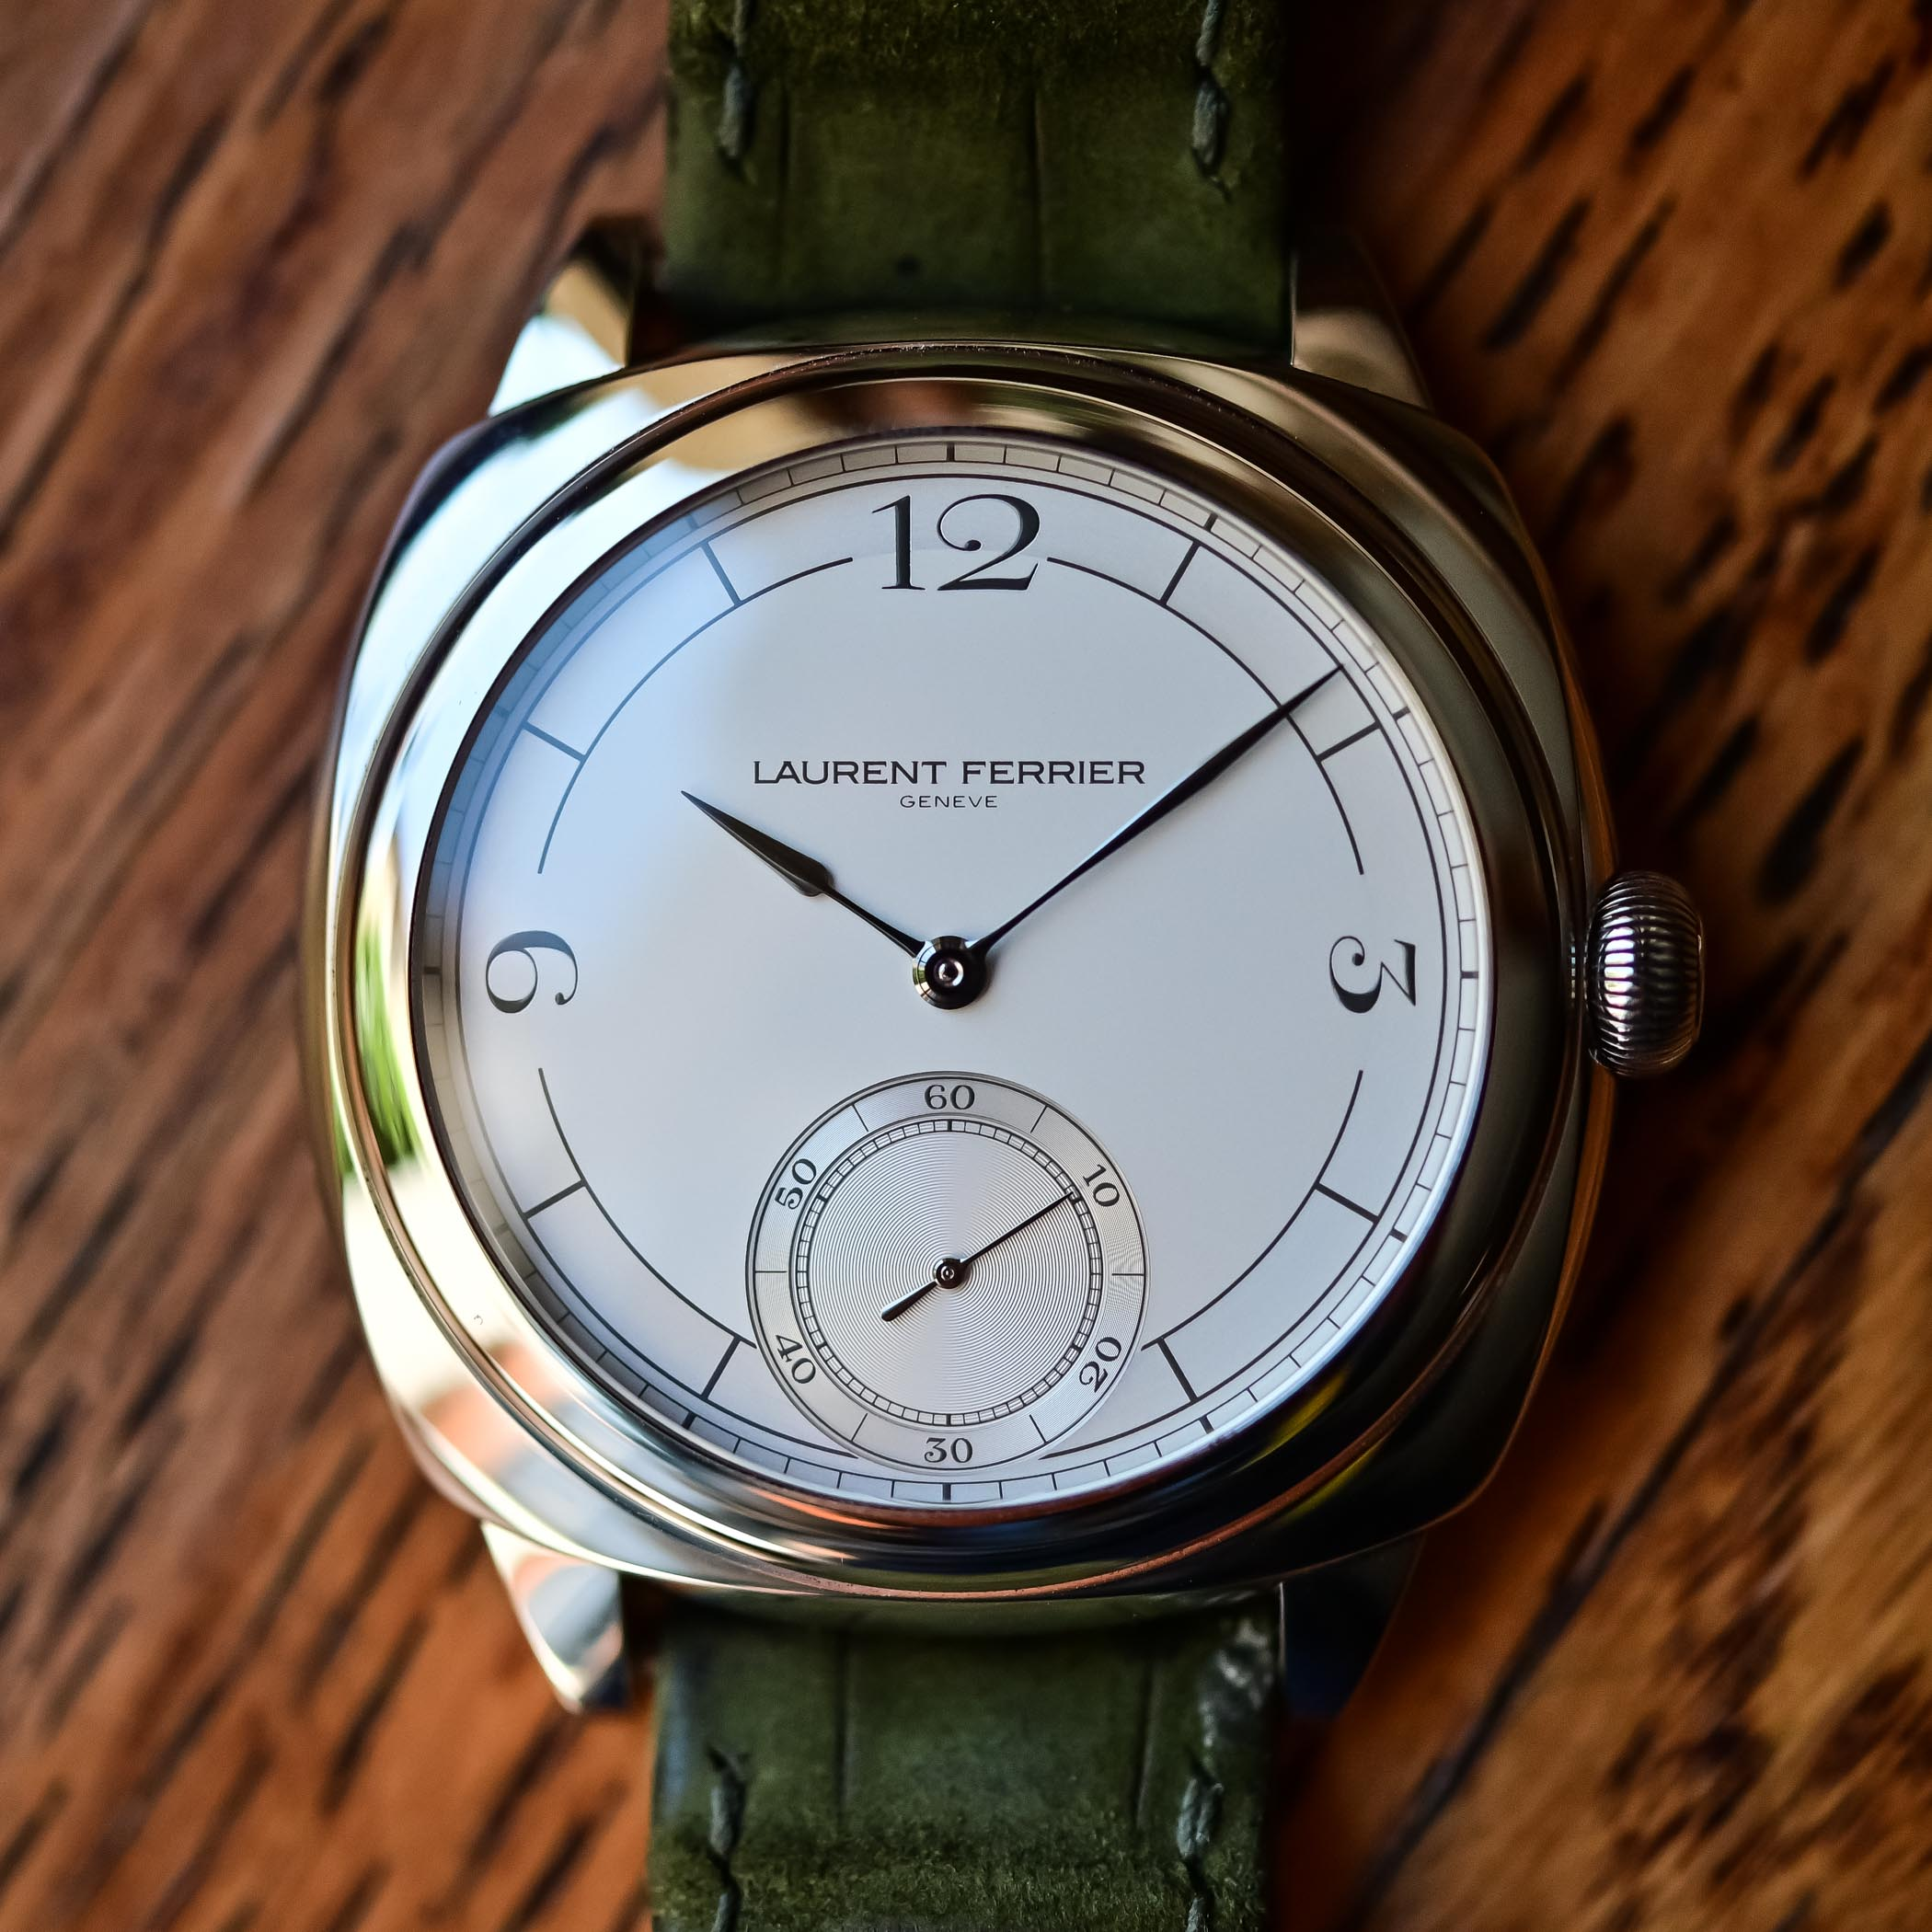 2021 Laurent Ferrier Square Micro-Rotor Retro Watches - Hands-on - 9